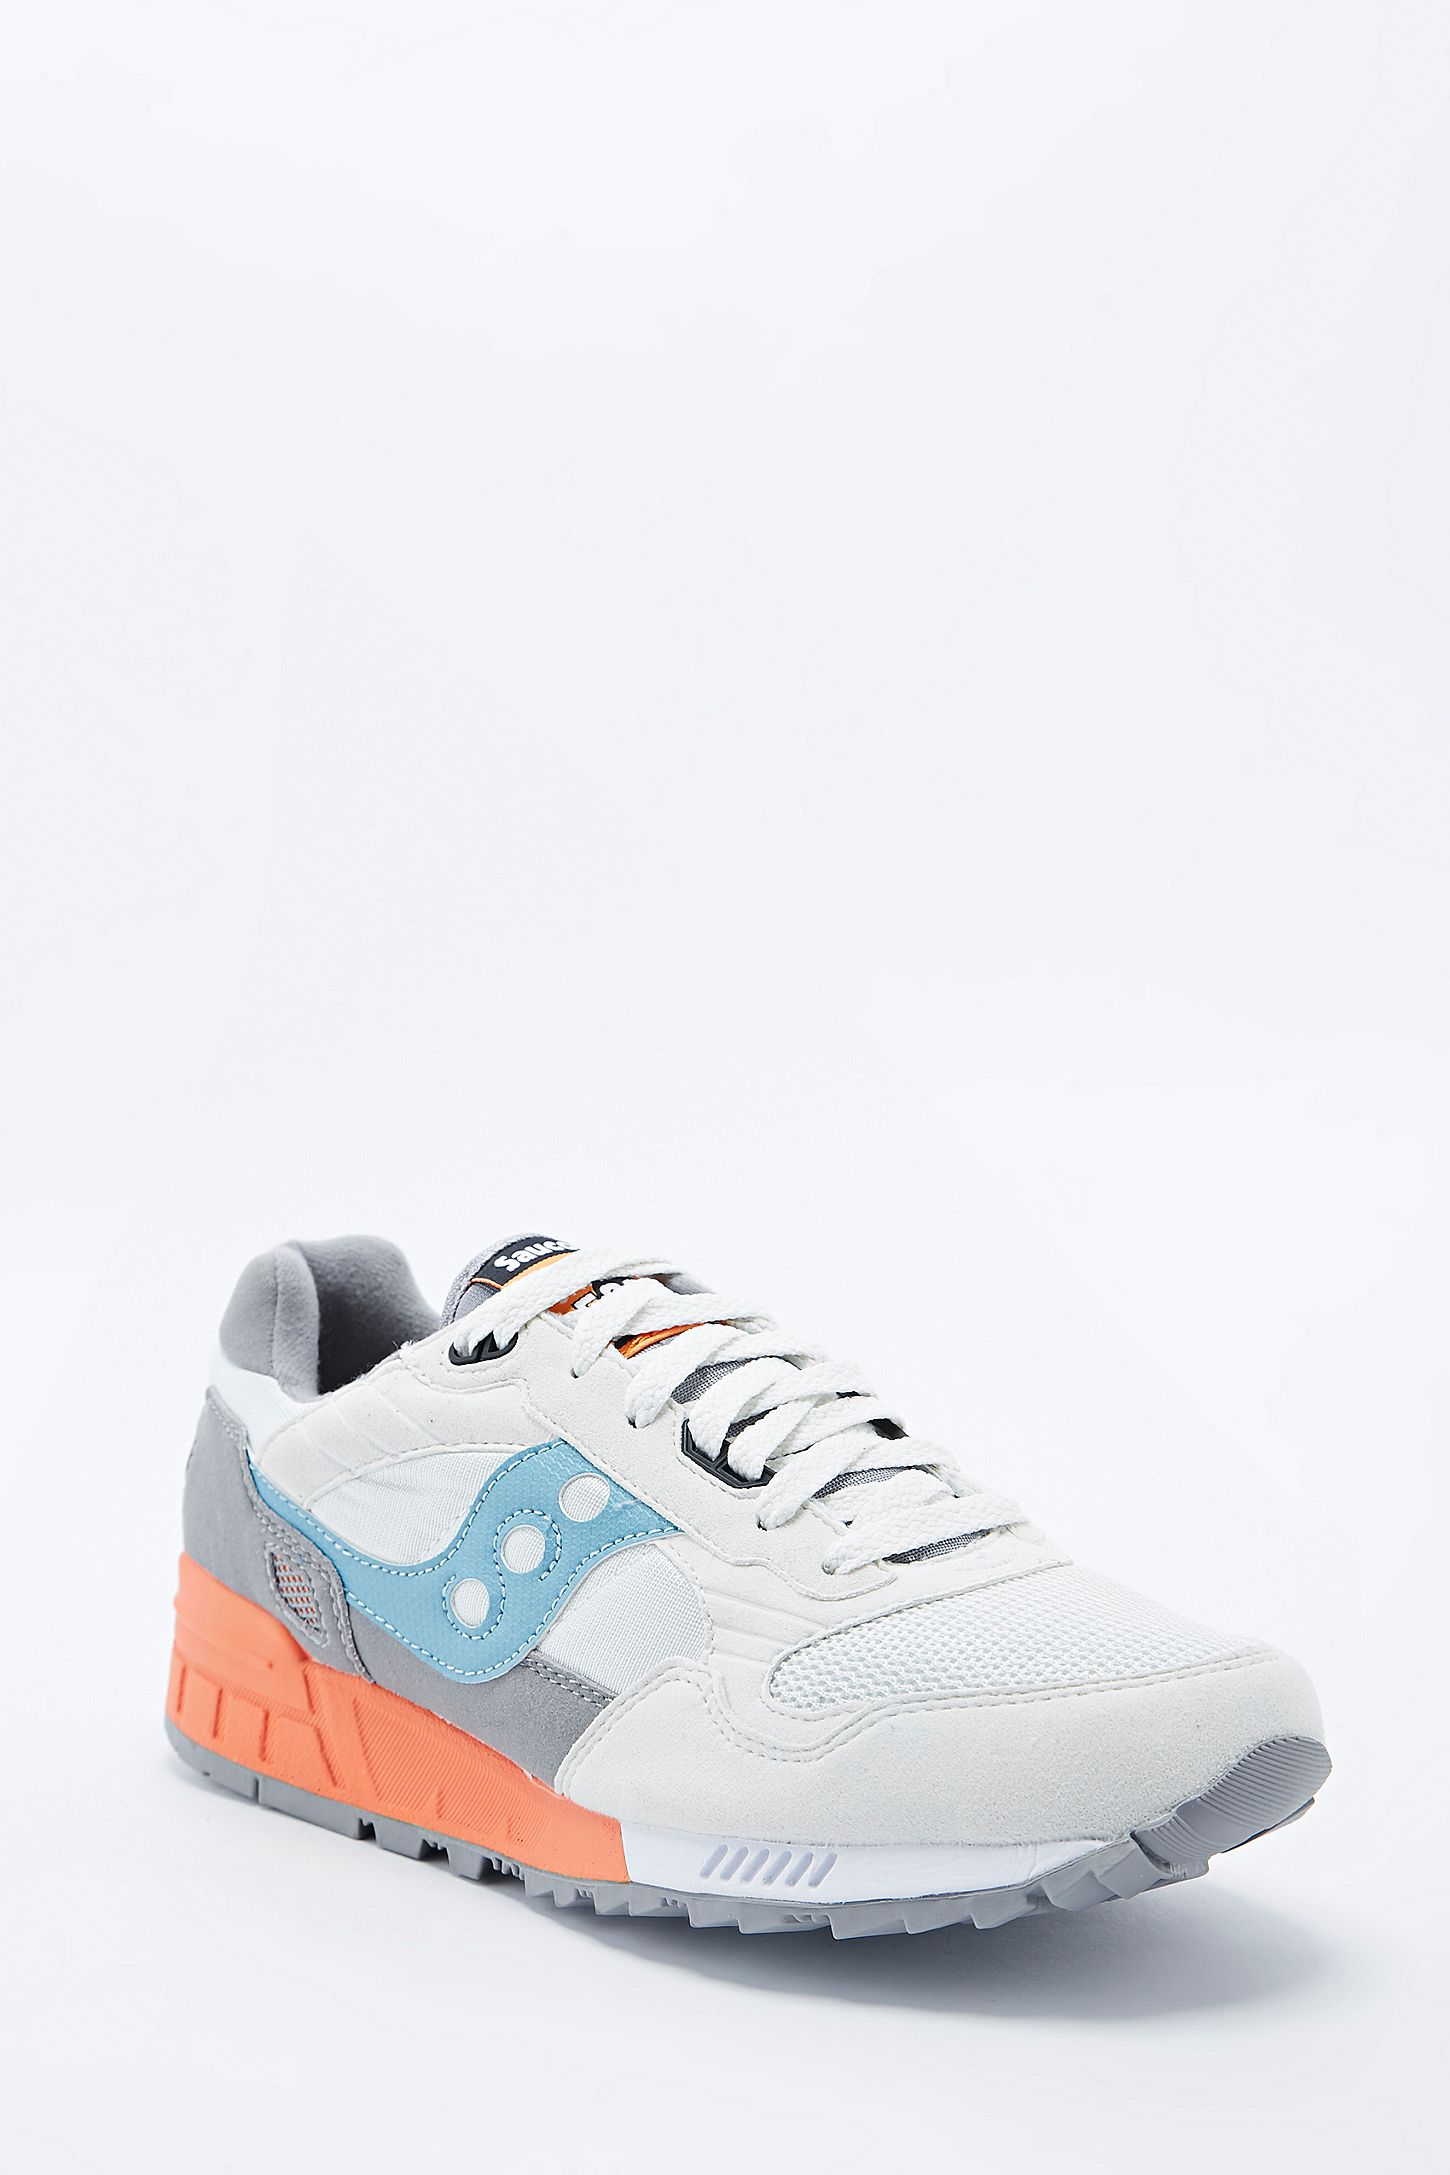 b210ec5a3423 Slide View  5  Saucony Shadow 5000 in Grey and Blue